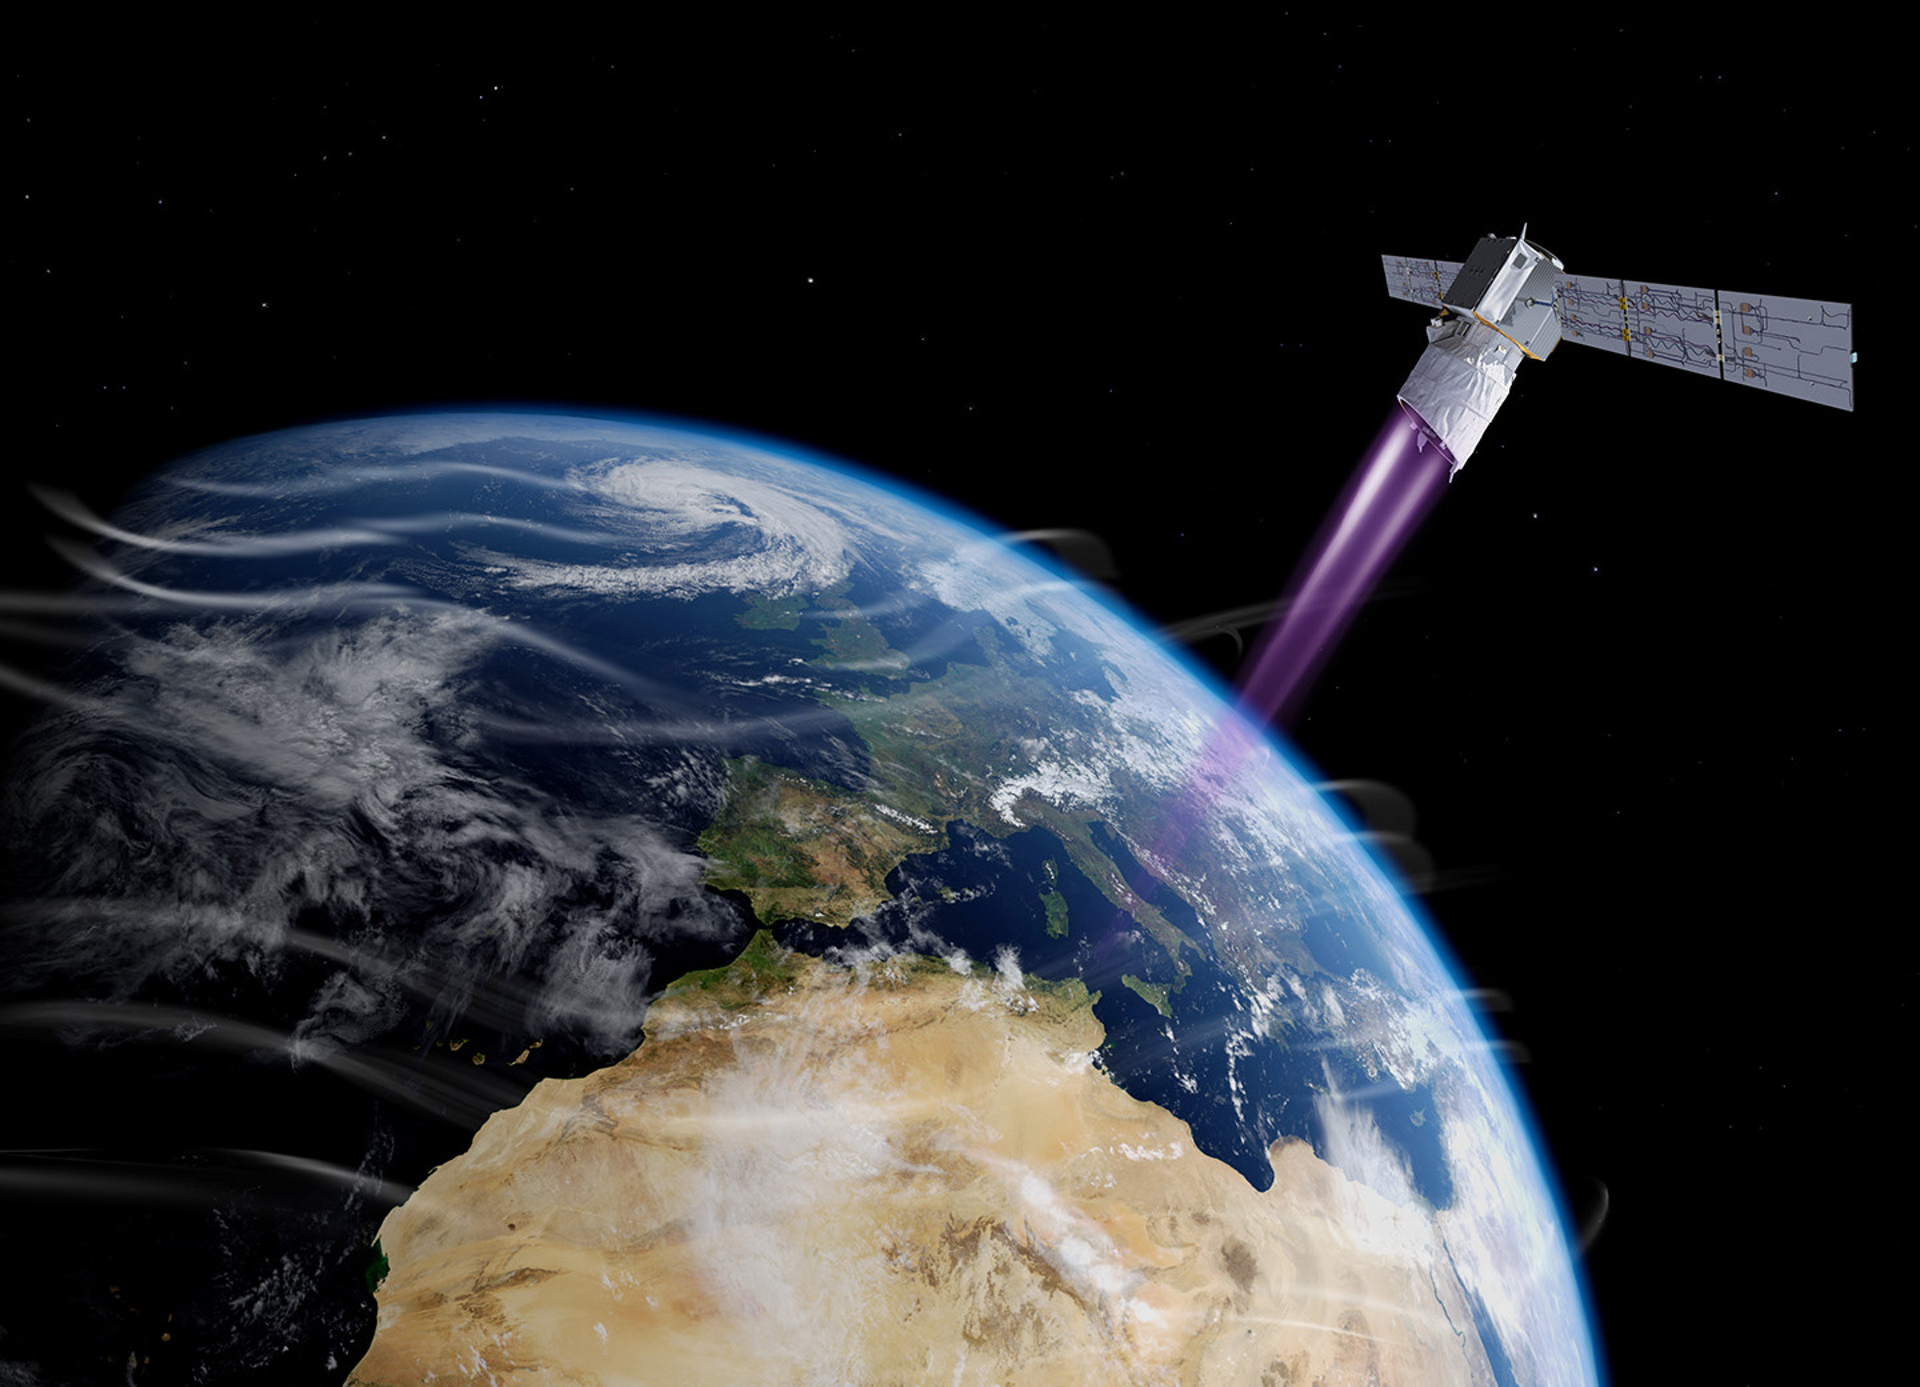 Aeolus is the world's first satellite to study the Earth's wind patterns from space to improve weather forecasting accuracy. This unique mission provides reliable wind-profile information on a global scale to take meteorological forecast to the next step.